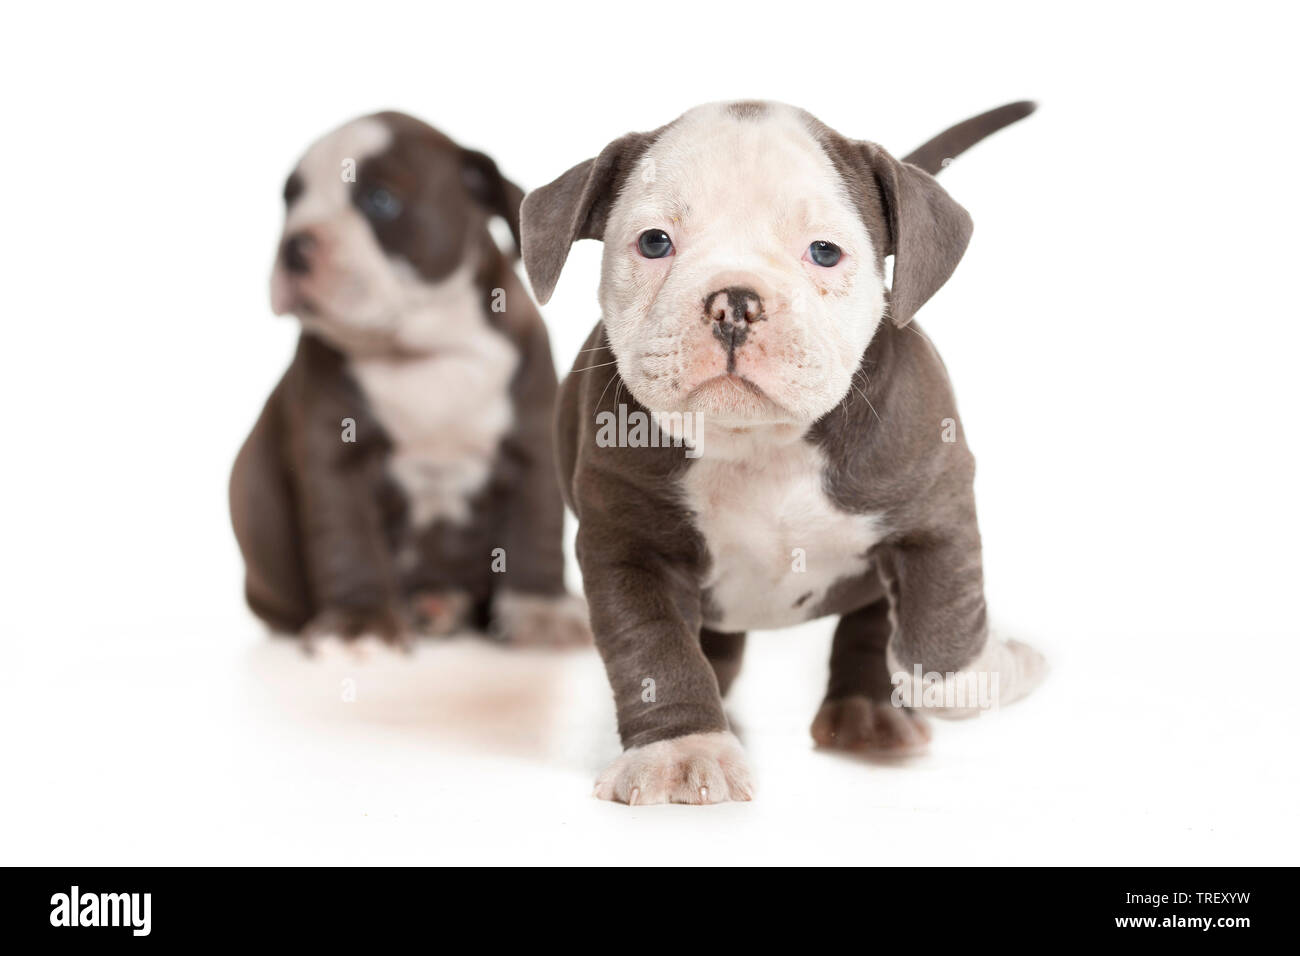 English Bulldog. Puppy walking towards the camera. Studio picture against a white background. Germany - Stock Image